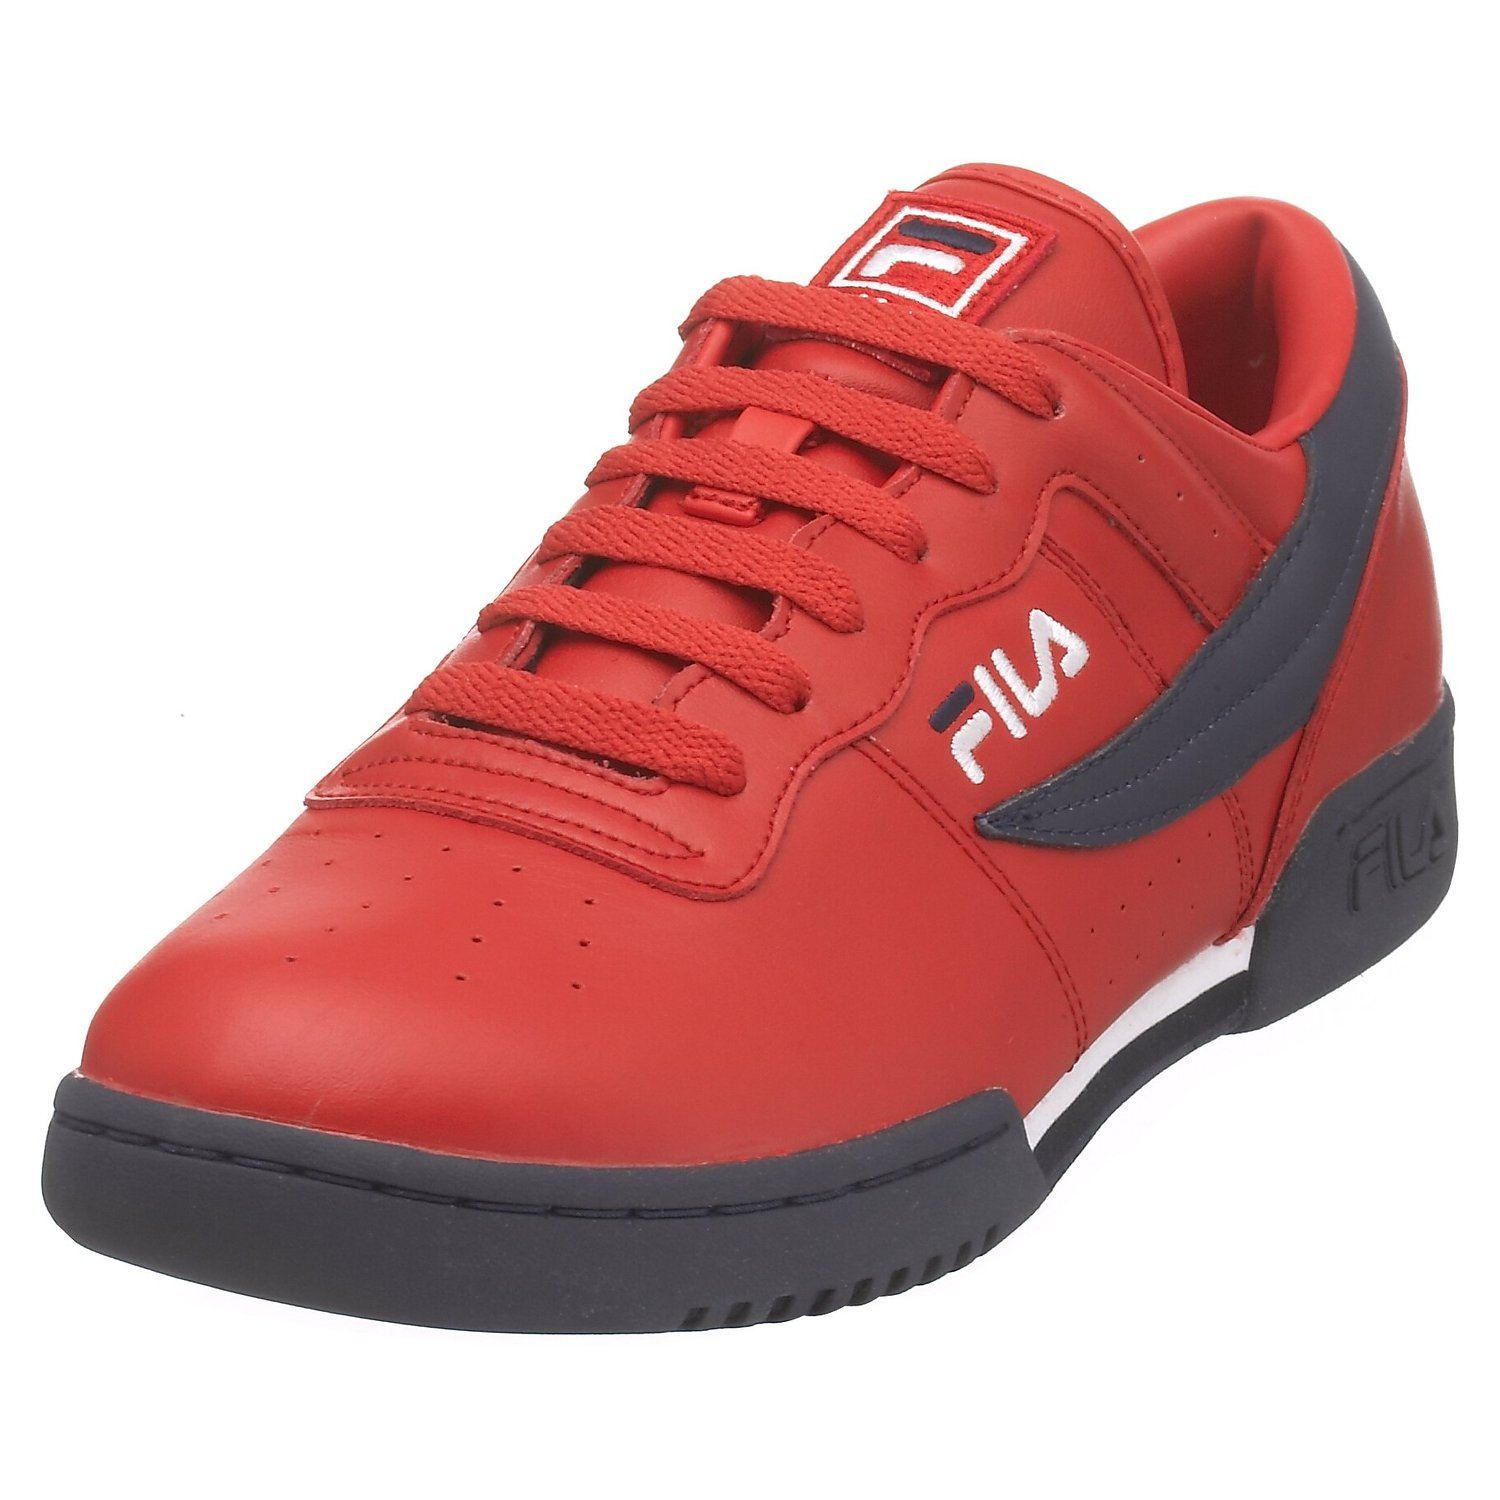 Fila Mens Original Fitness by Fila